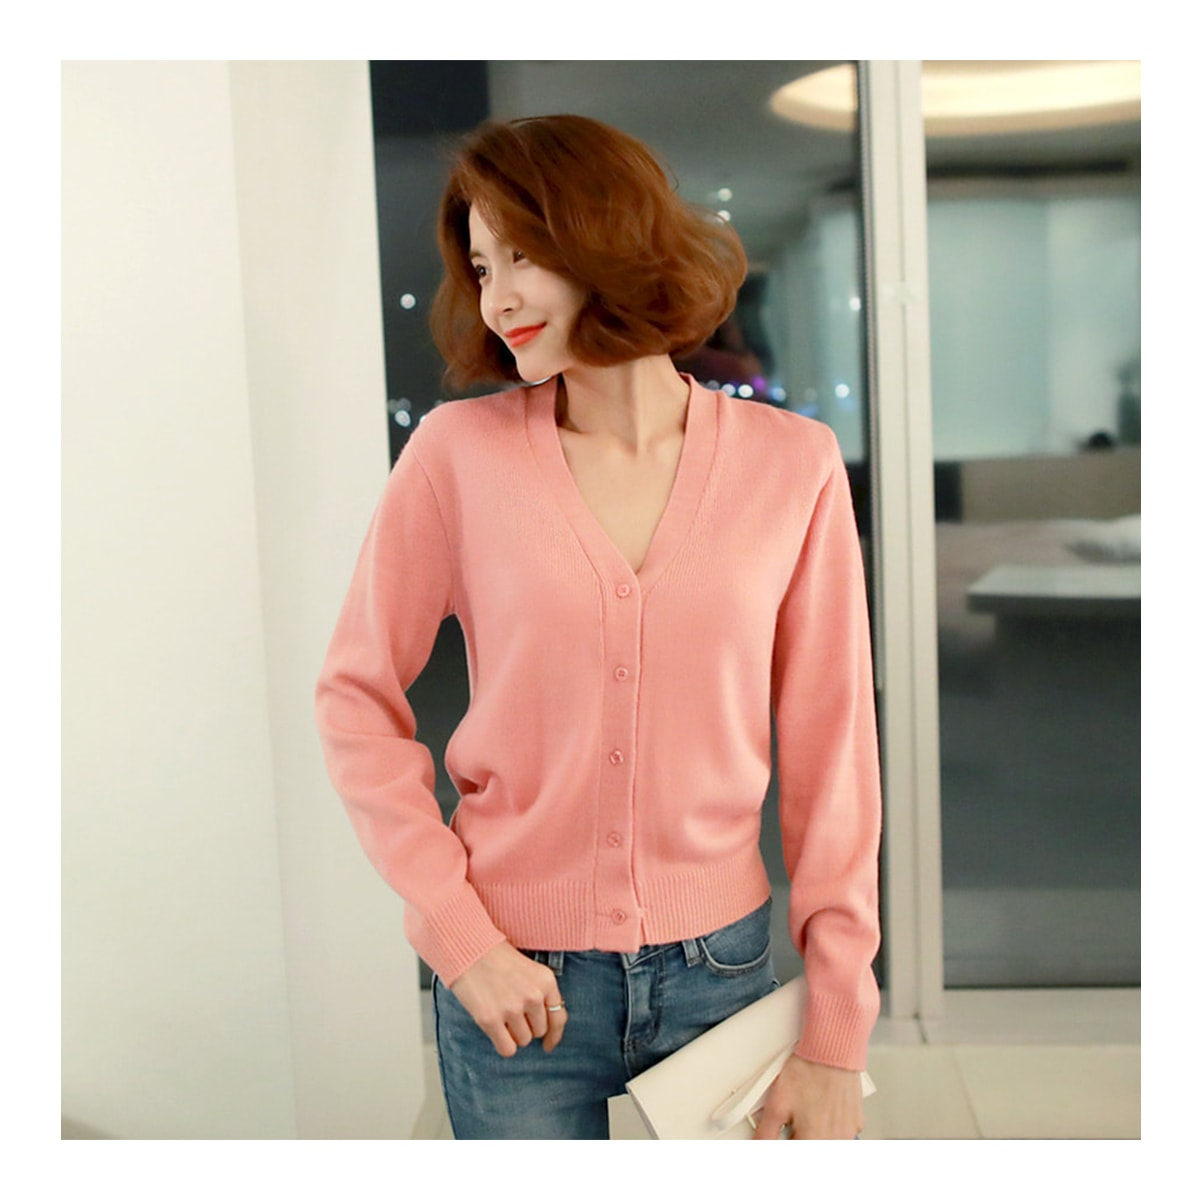 Yamibuy.com:Customer reviews:WINGS V-Neck Cropped Cardigan #Pink One Size(S-M)